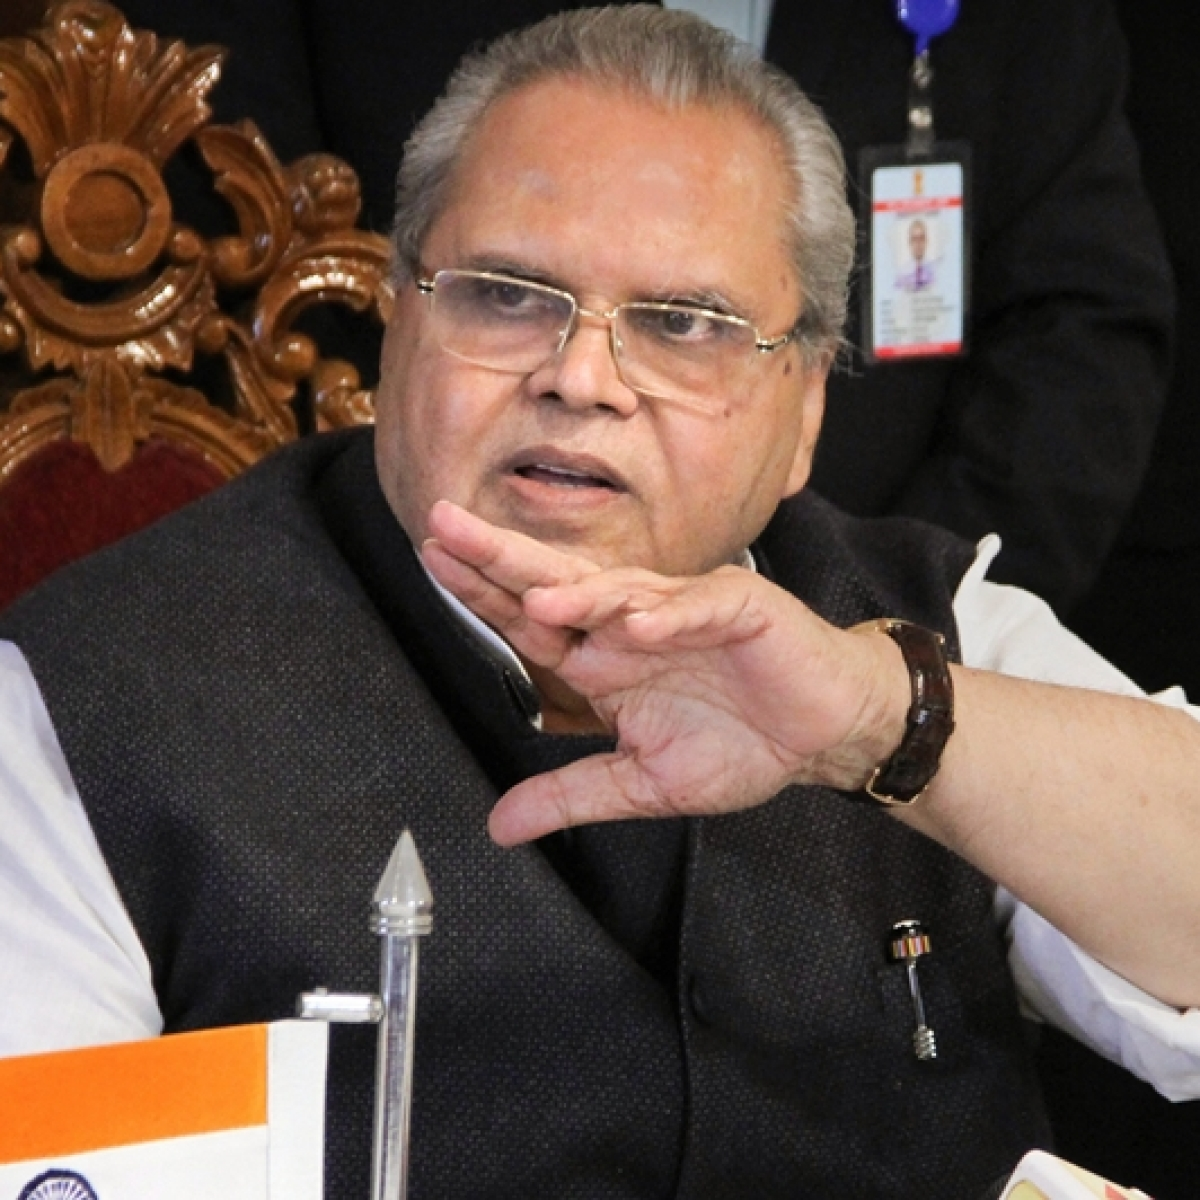 Opposition sends strongly-worded letter to J&K Governor over curbs on Kashmir visit